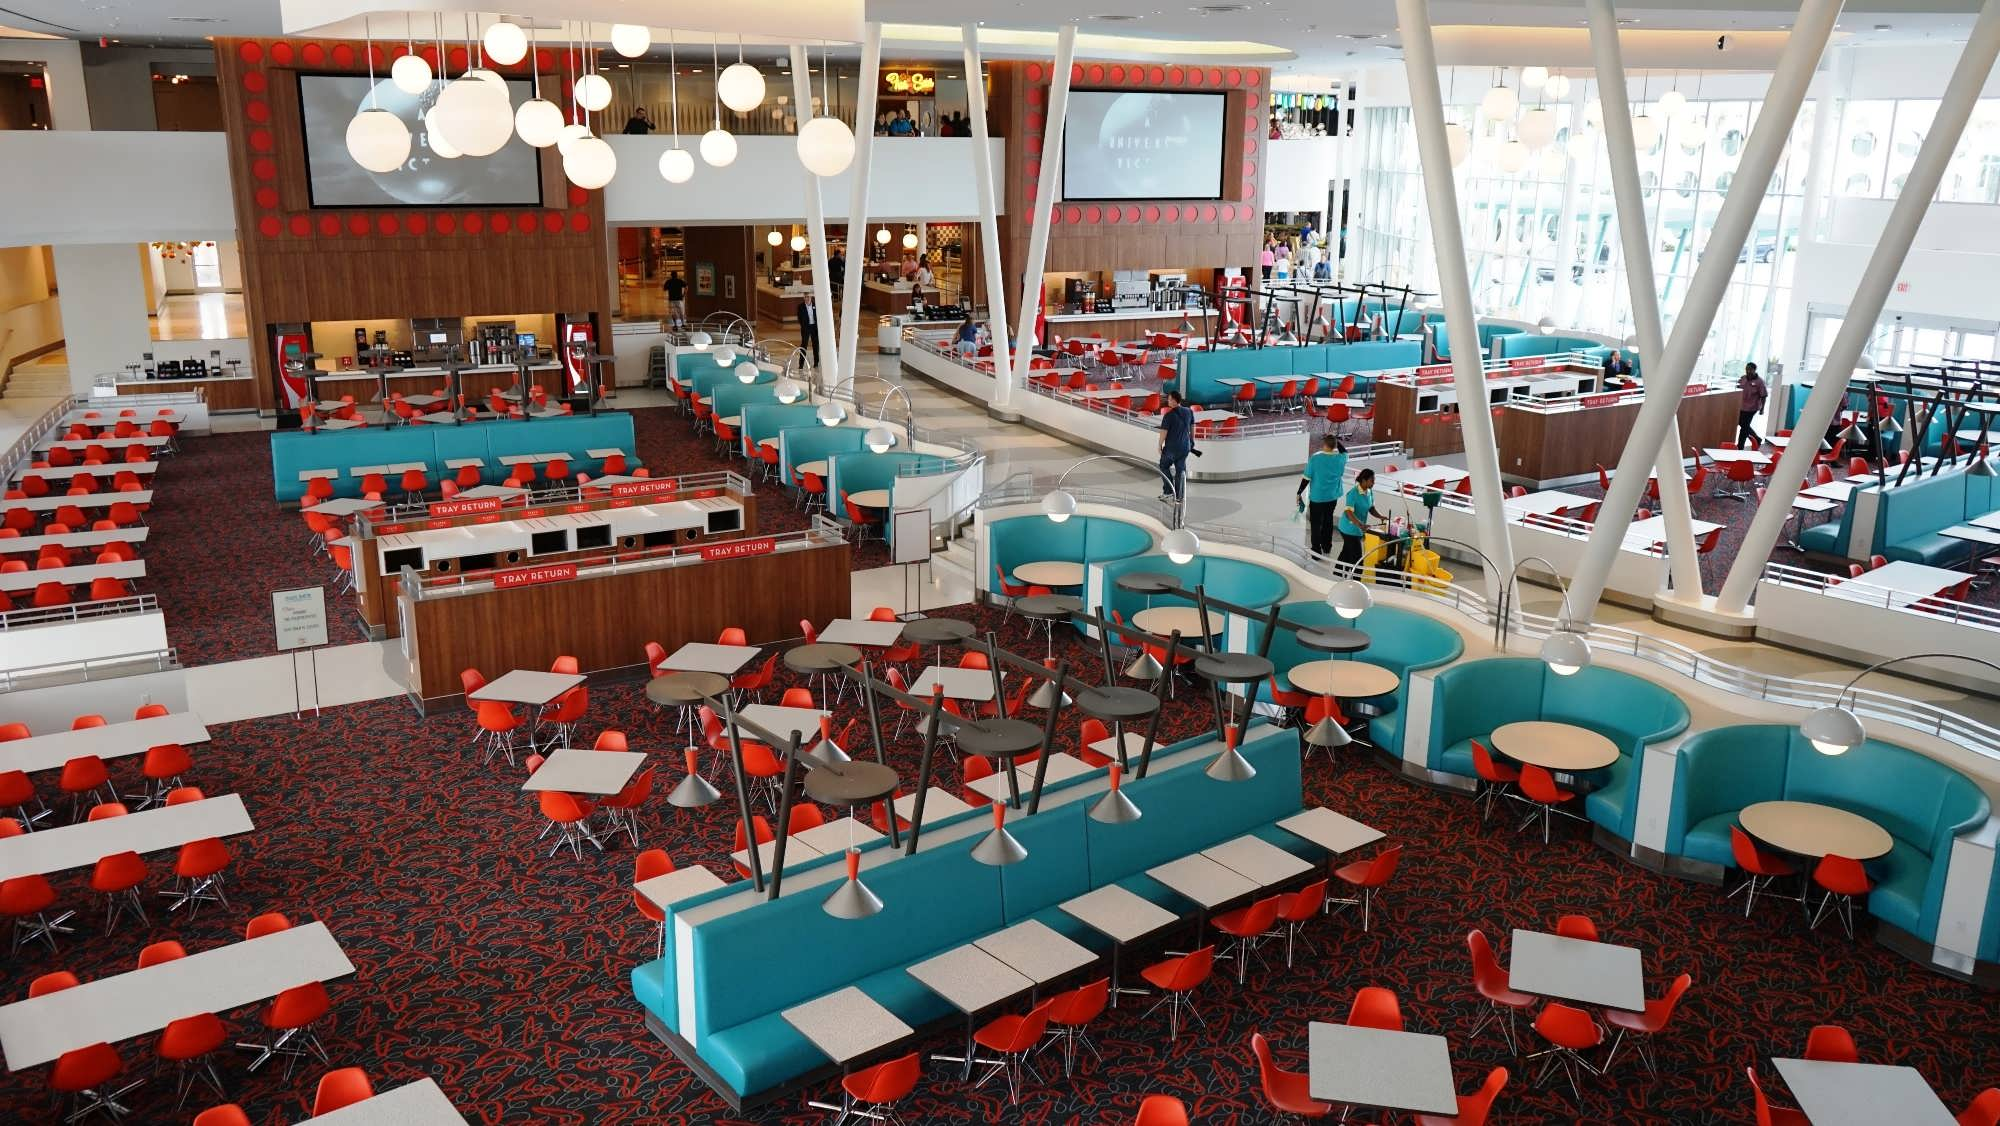 Bayliner Diner at Cabana Bay Beach Resort